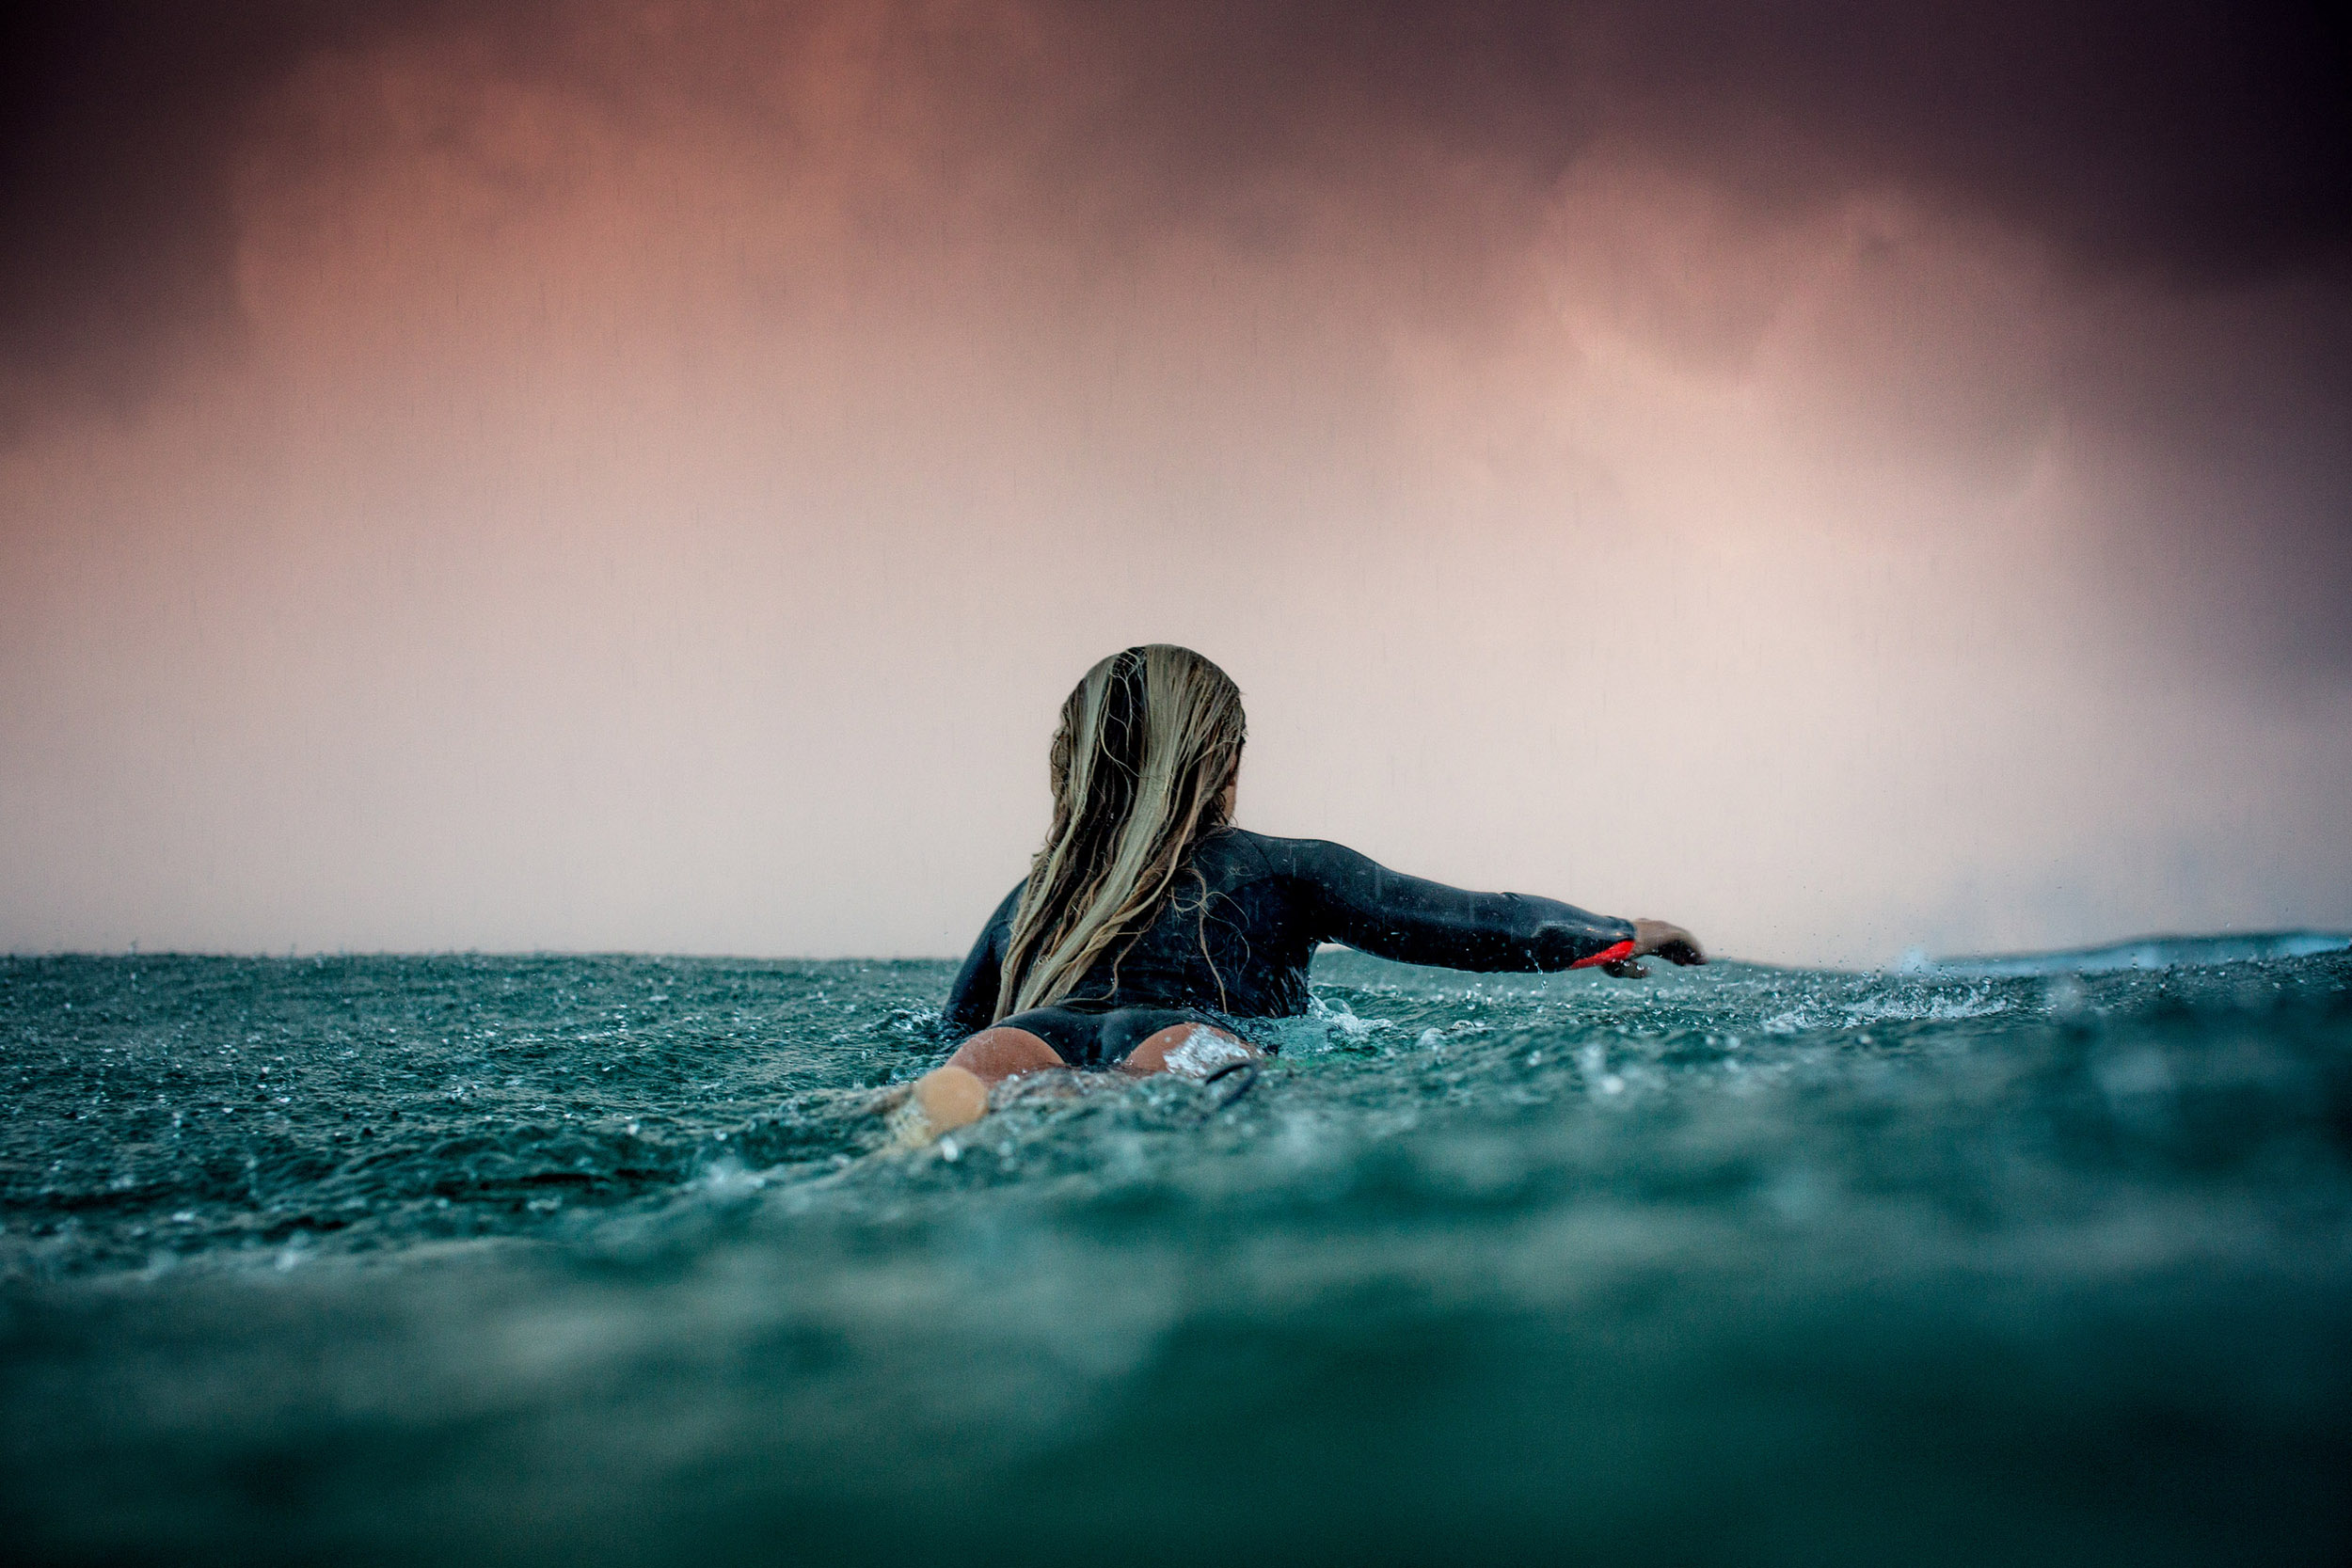 surfing-in-a-storm-surf-photography-S1507-142.jpg